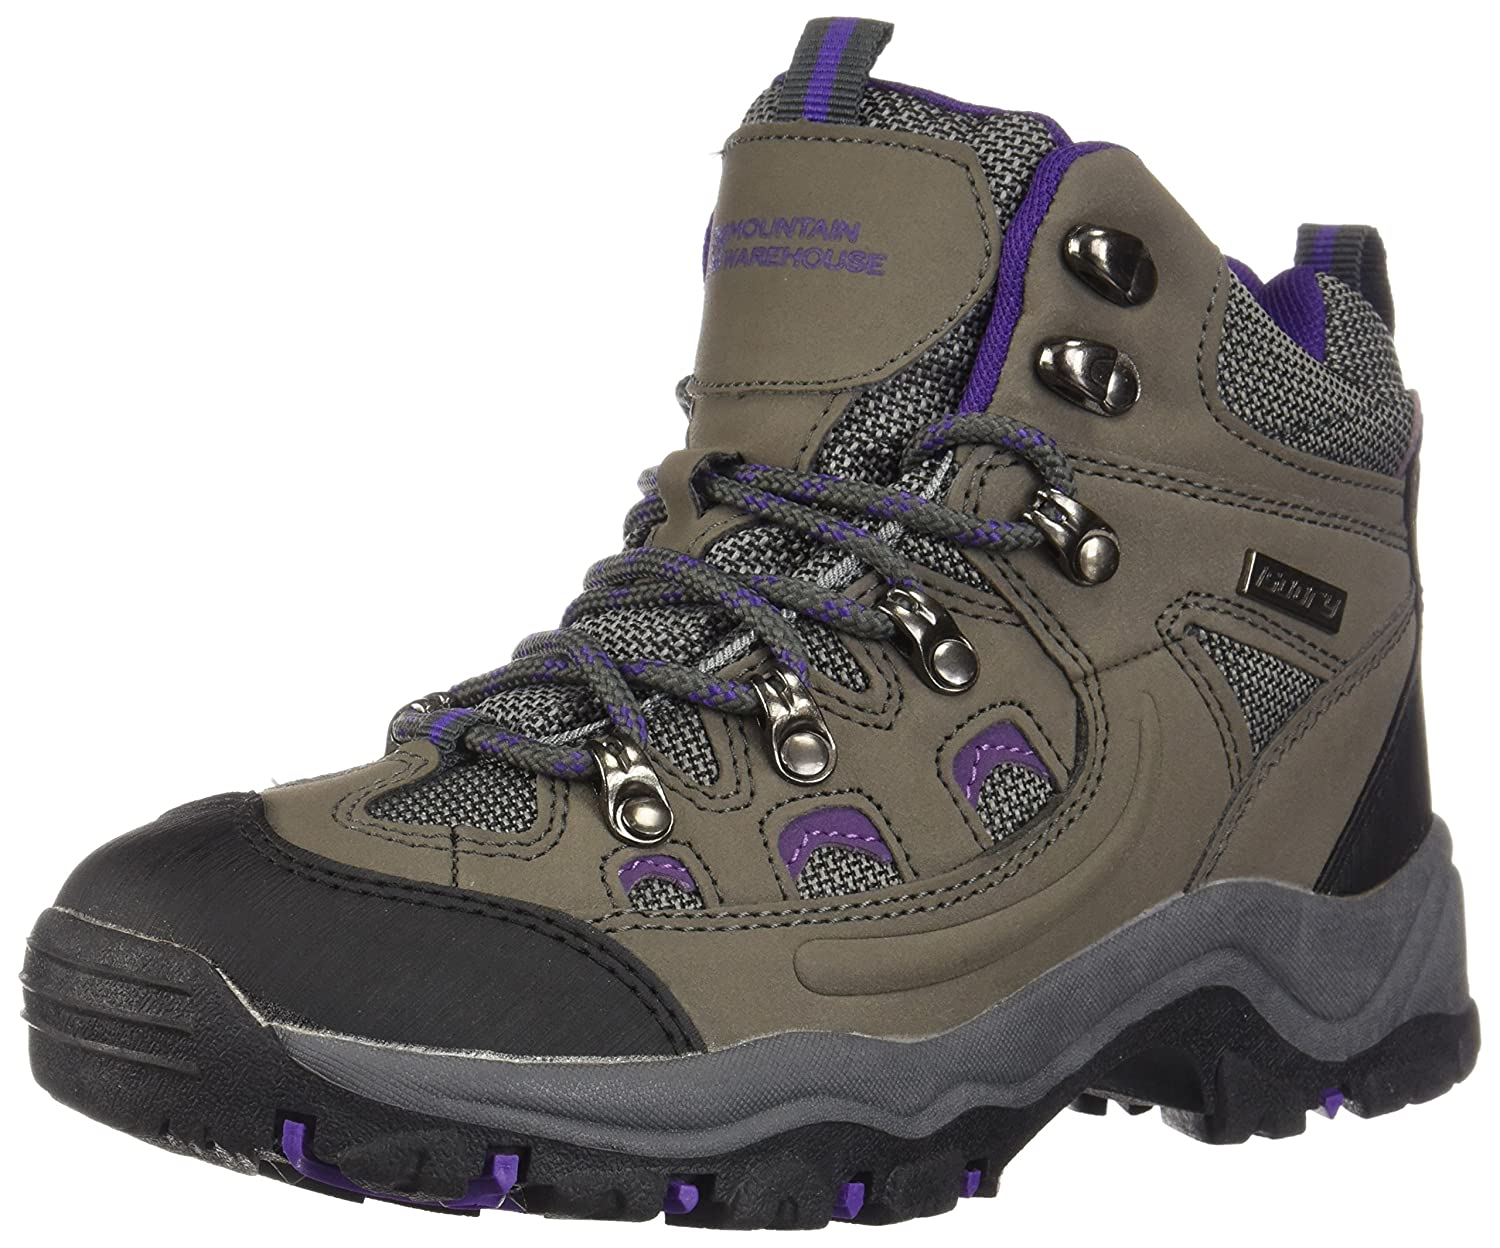 fbe70ee75e57 Mountain Warehouse Adventurer Womens Waterproof Boots - for Hiking   Amazon.ca  Shoes   Handbags